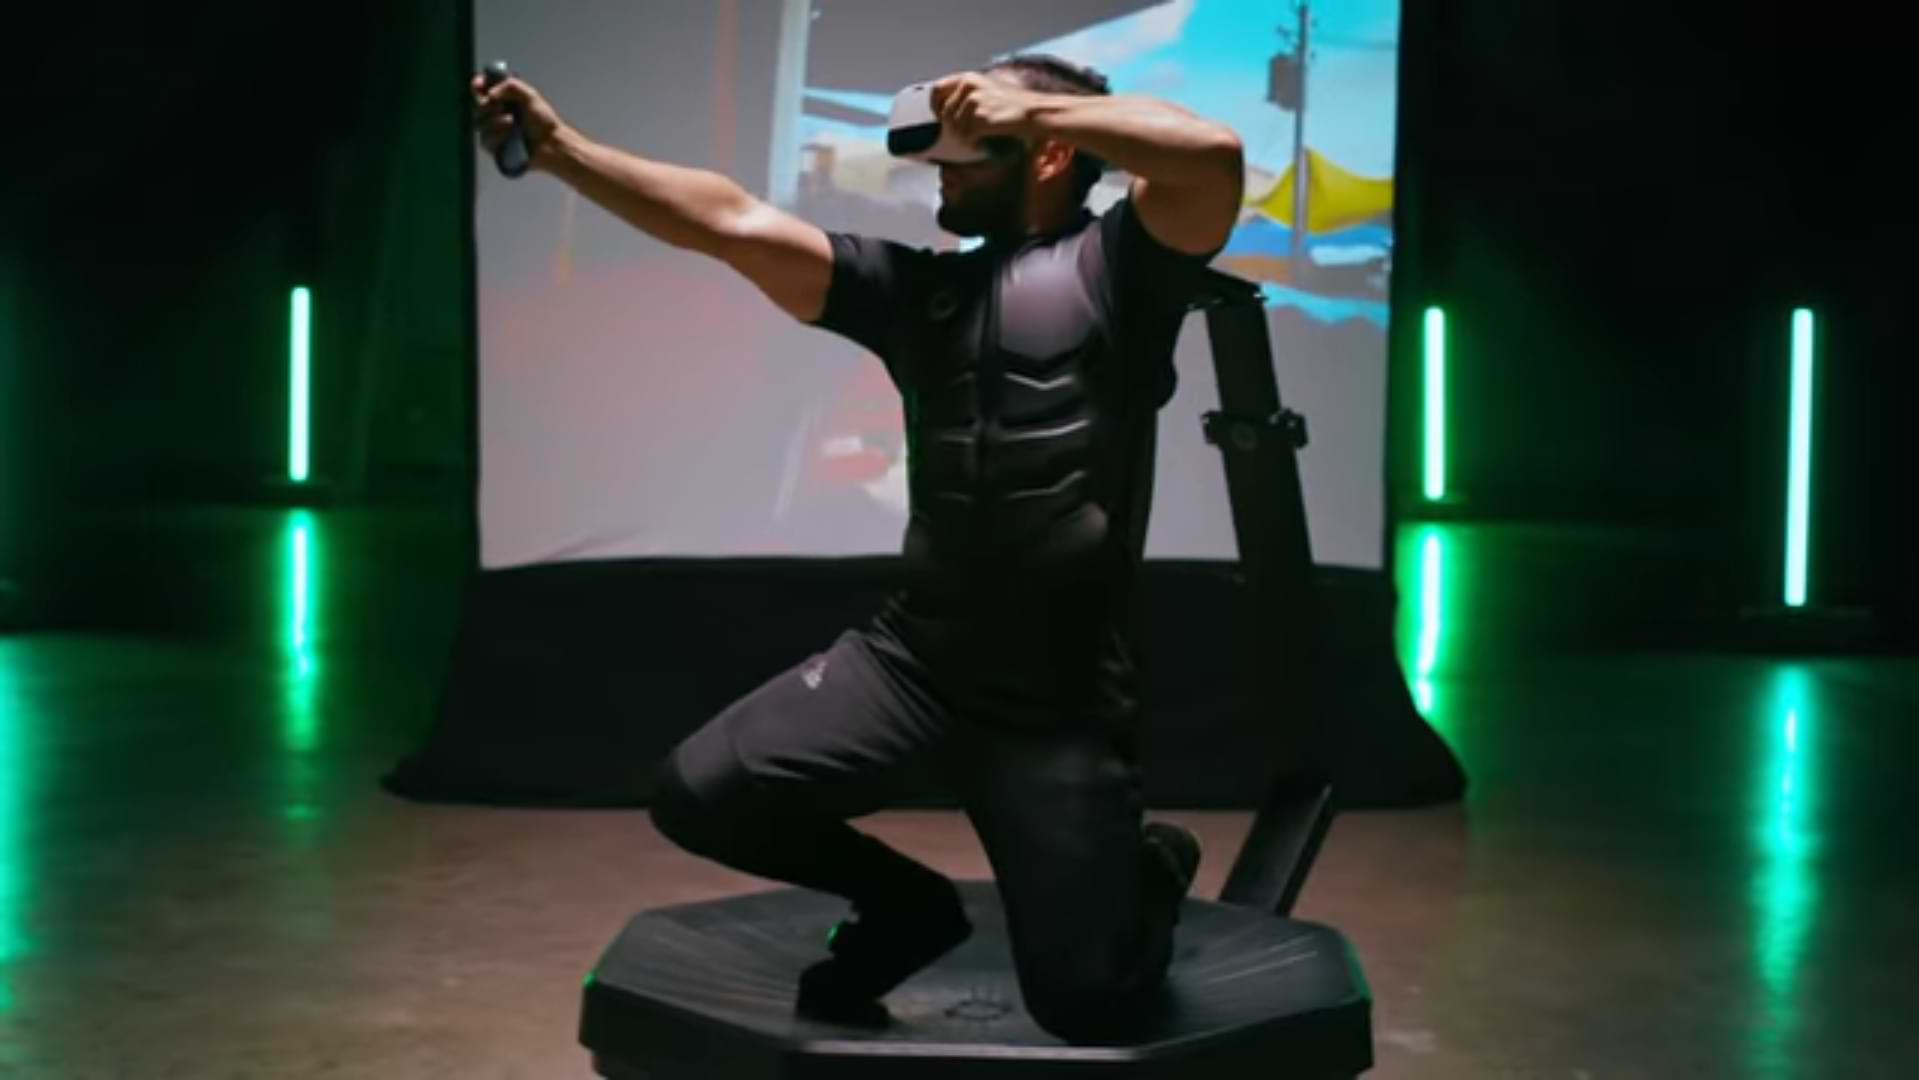 Virtuix Omni One, a platform that will allow you to run and crouch in virtual reality games